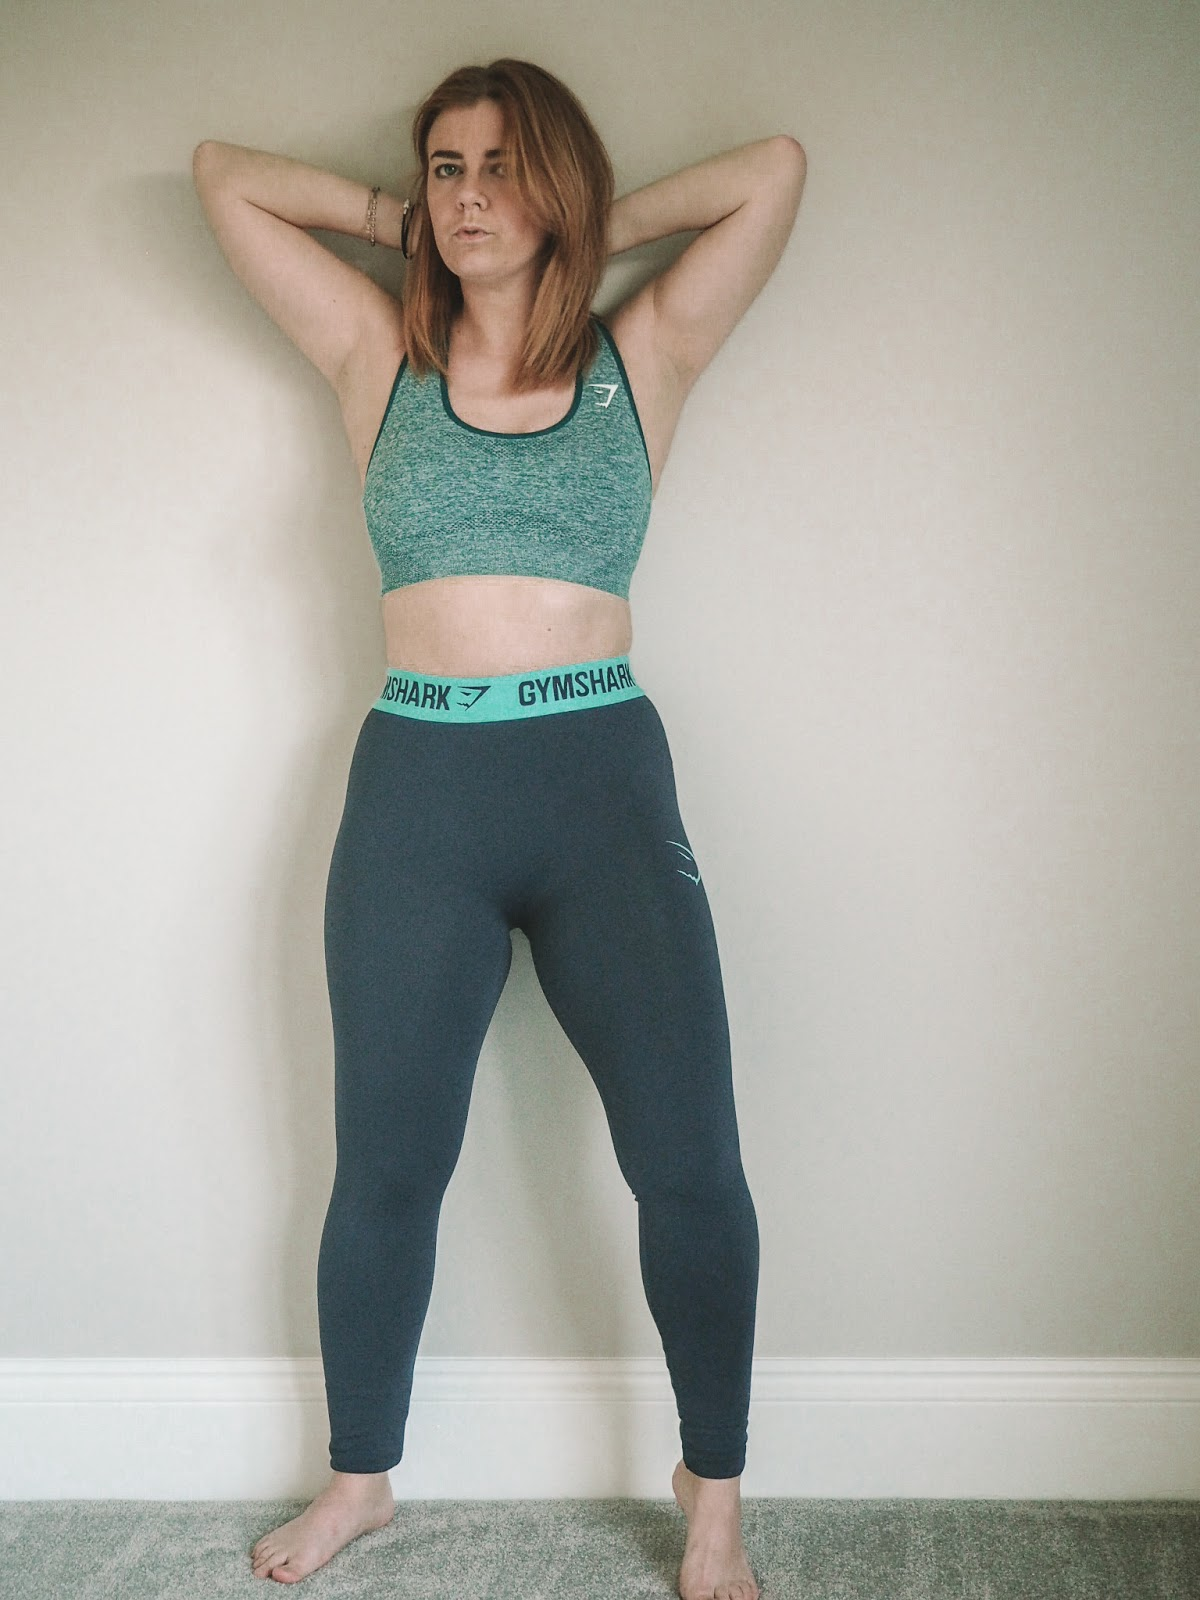 Emma standing against a plain grey wall in a teal sports bra and navy leggings with her hands behind her head